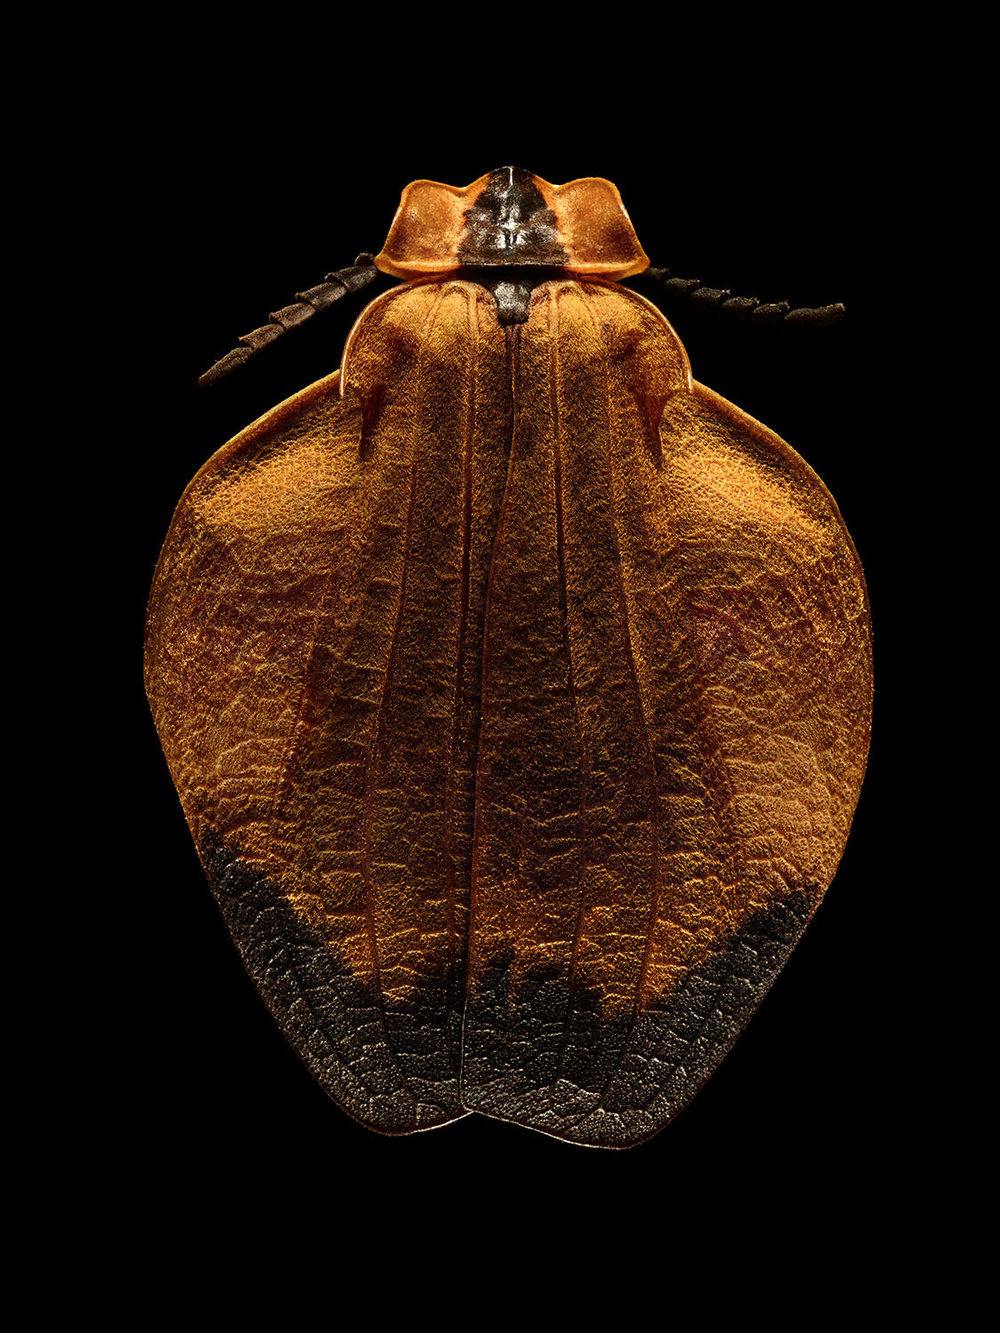 Oranged-netted Winged Beetle